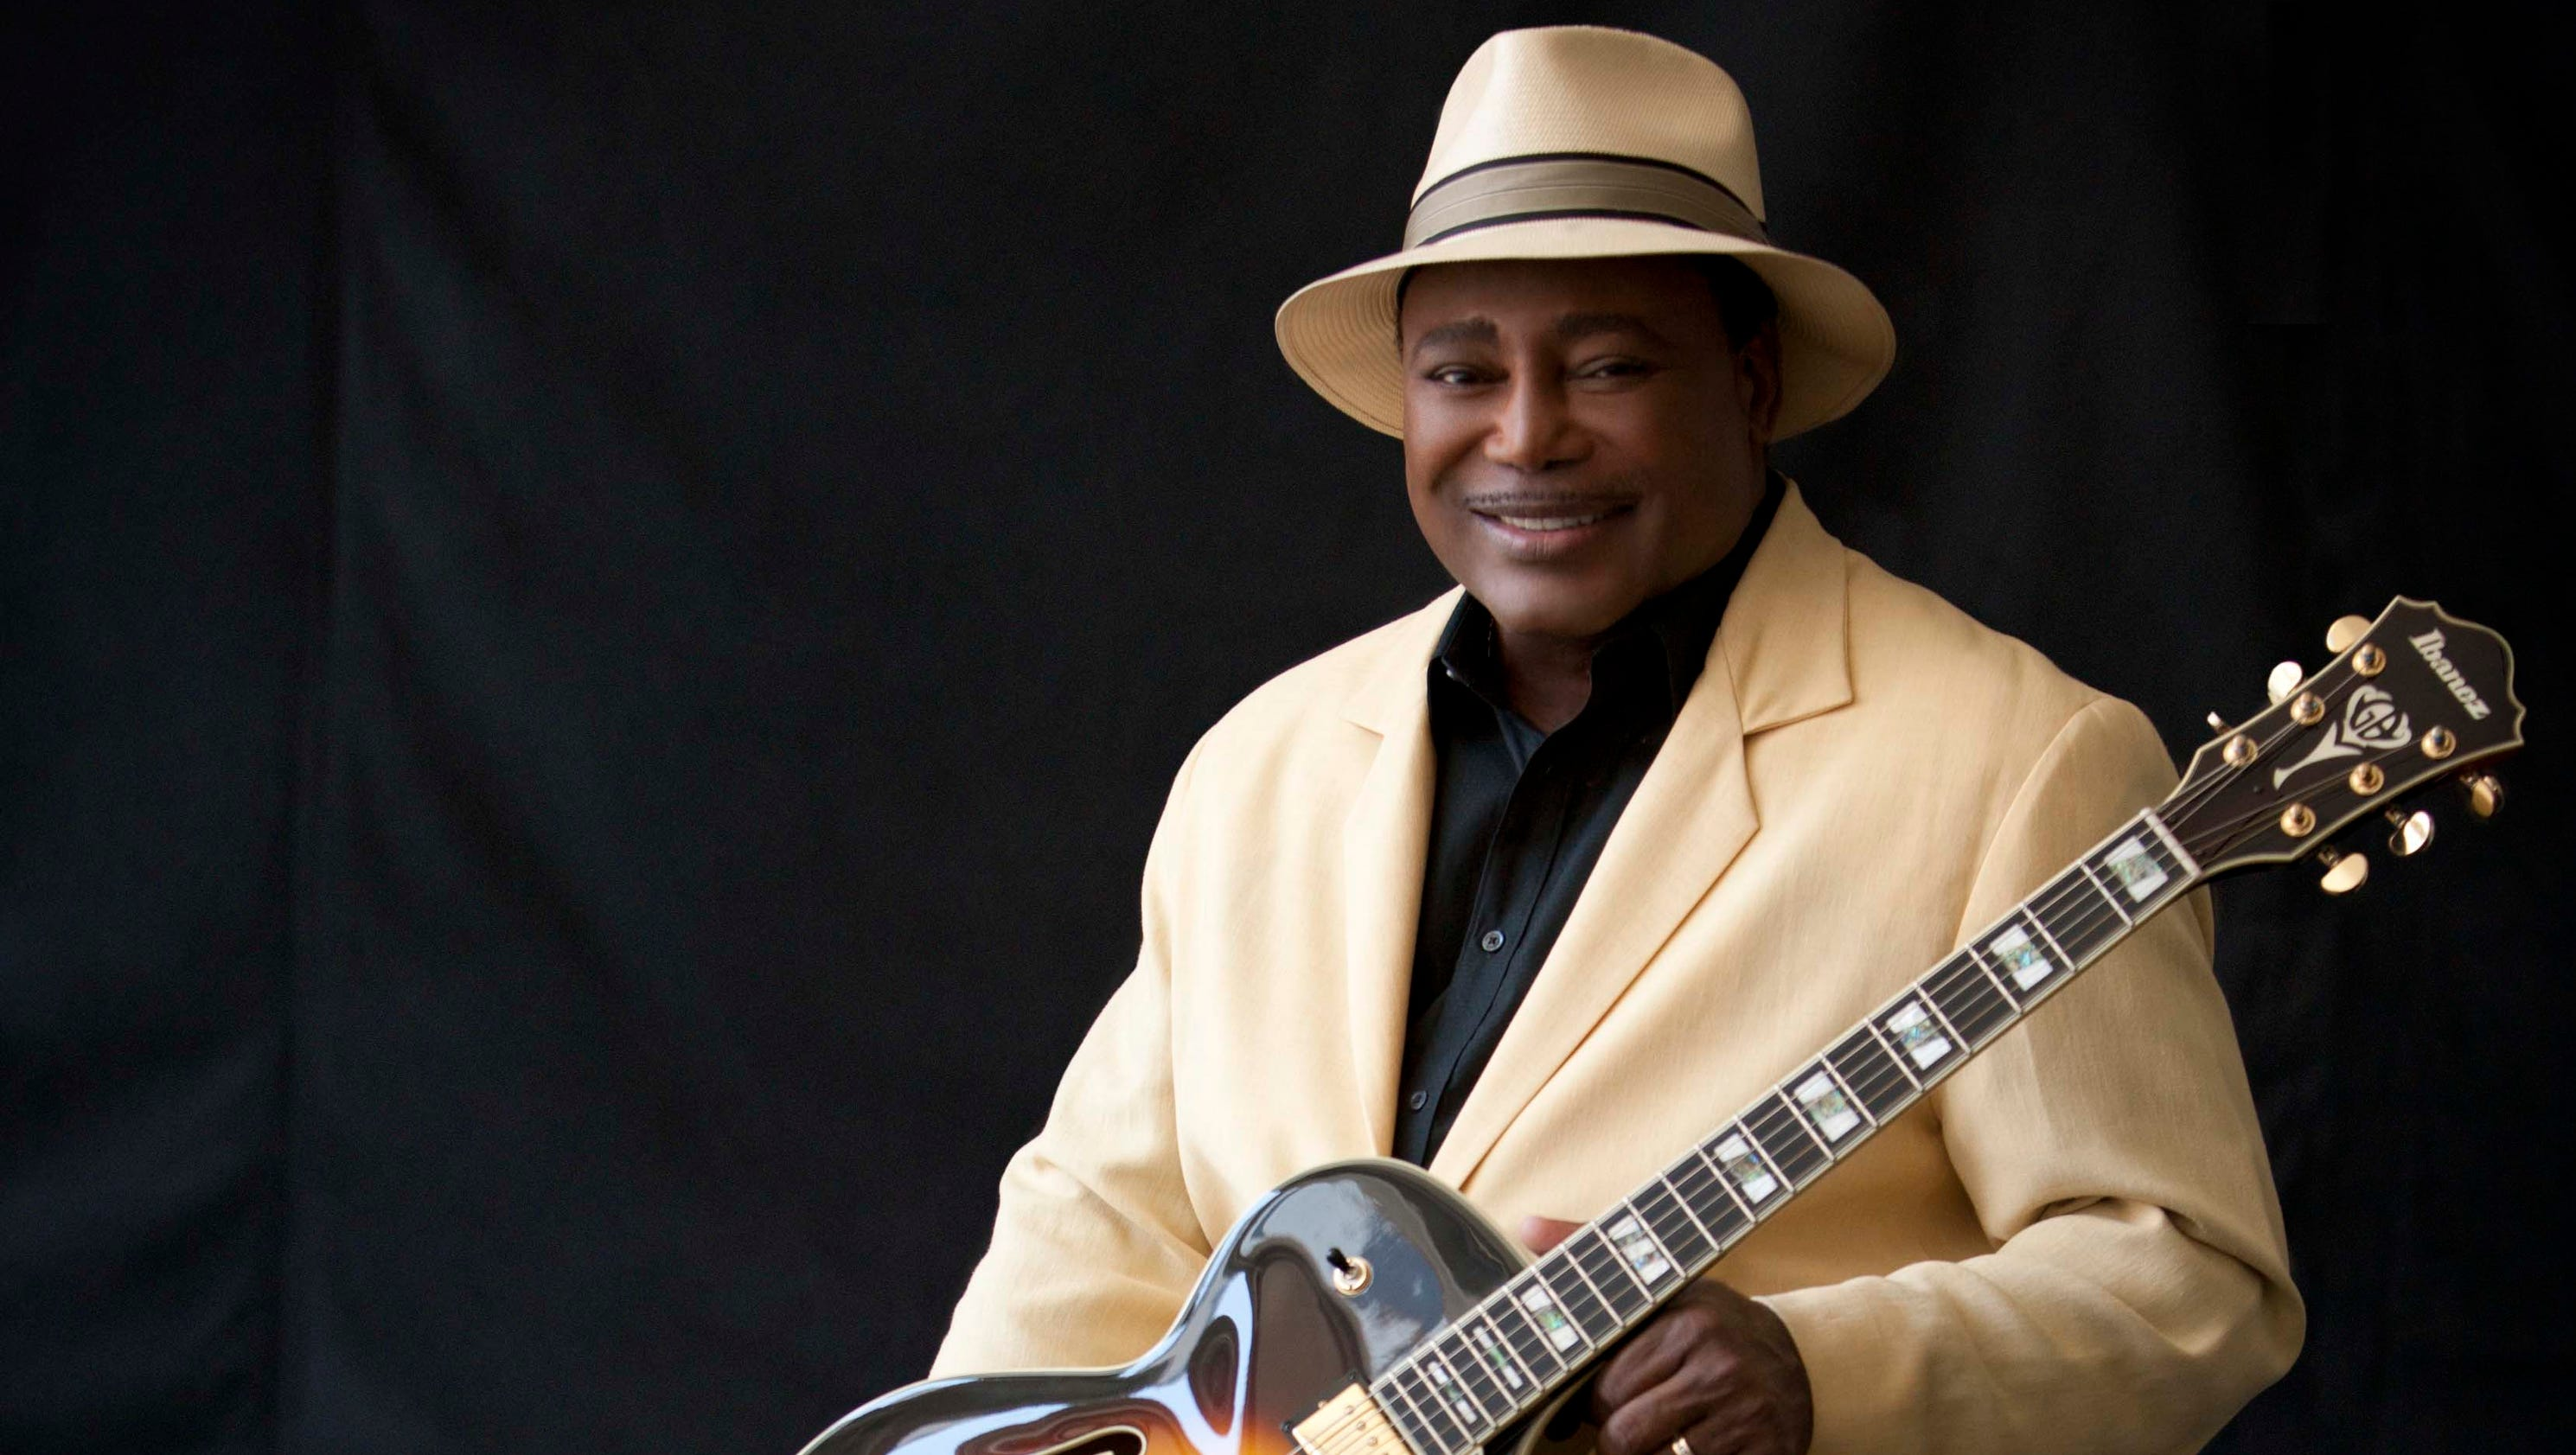 George Benson - Grand New World - Greatest Love Songs